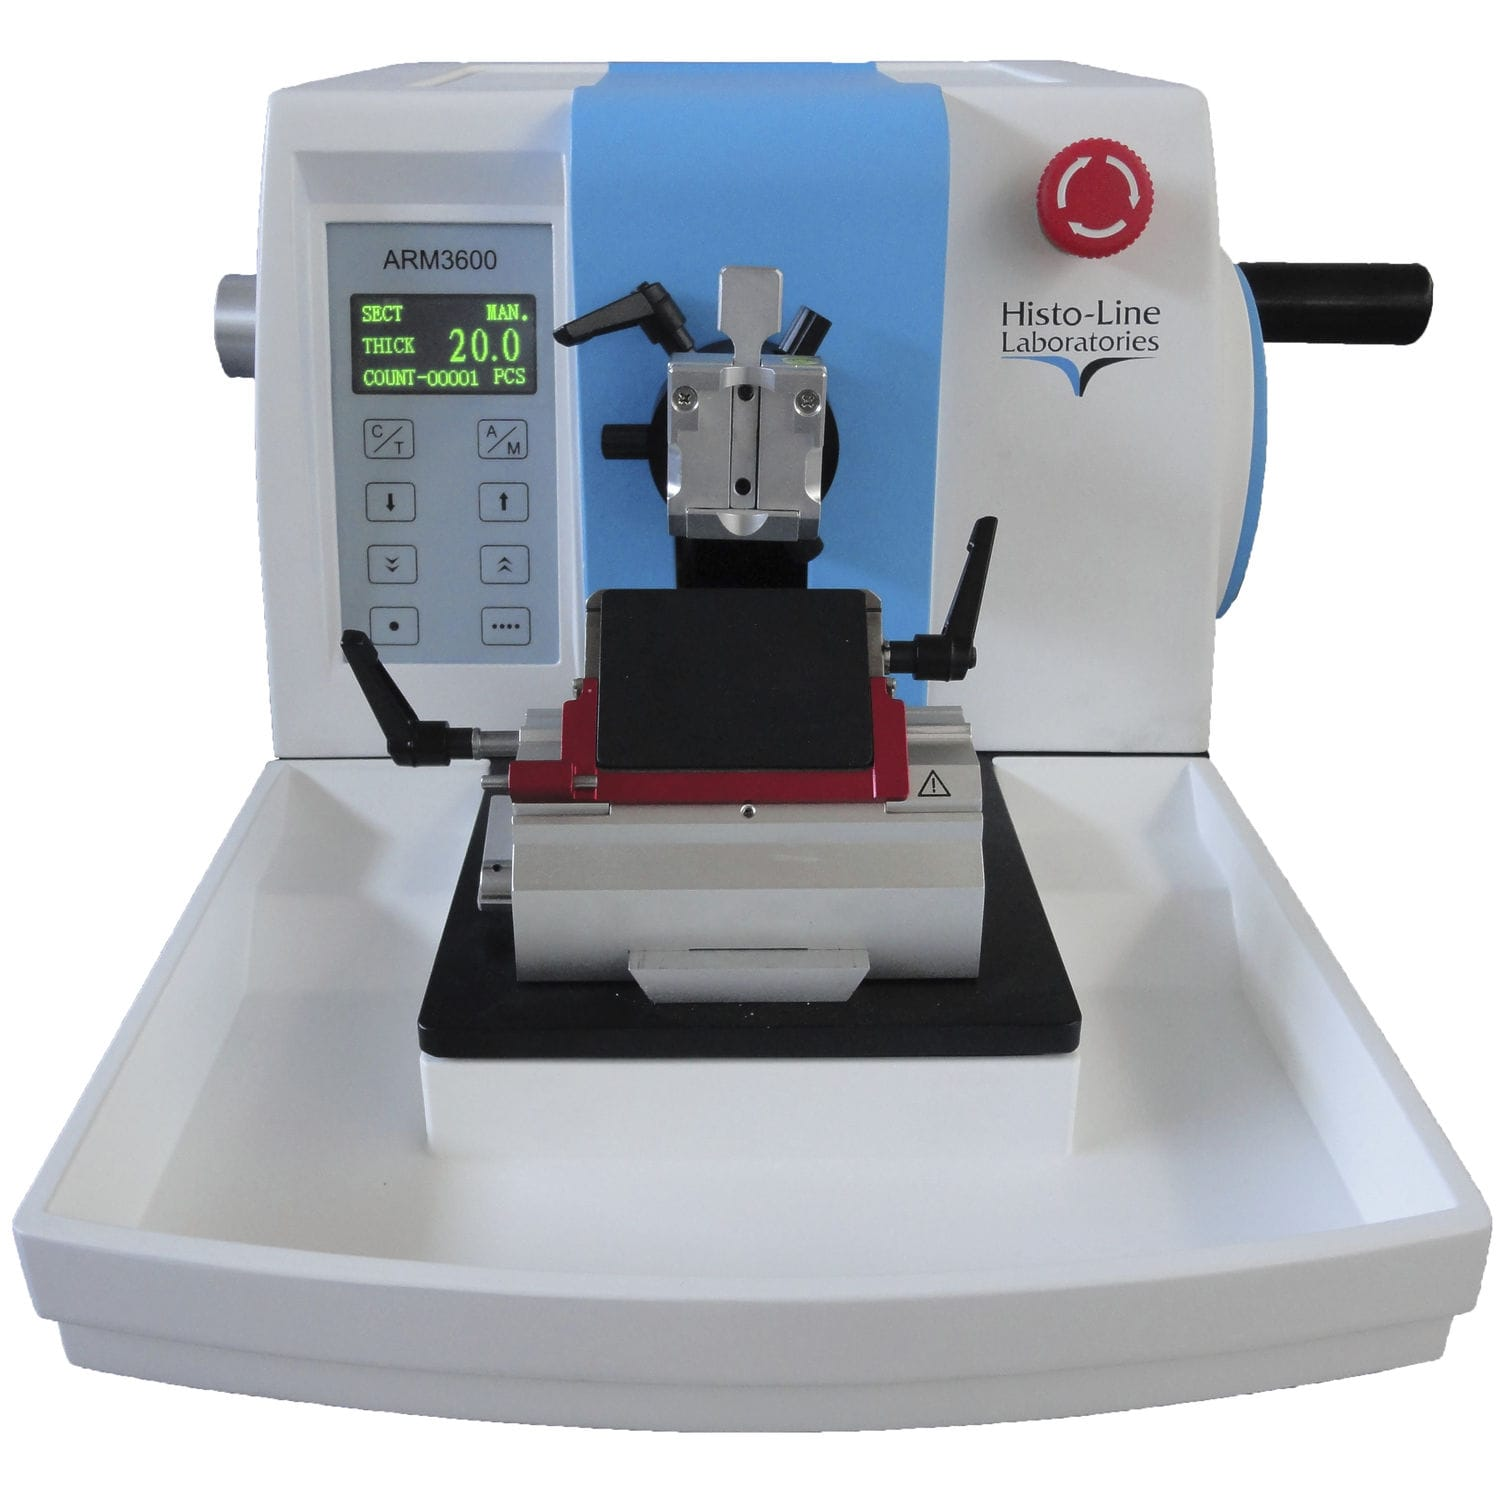 Rotary microtome - ARM 3600 - Histo-Line Laboratories - automatic